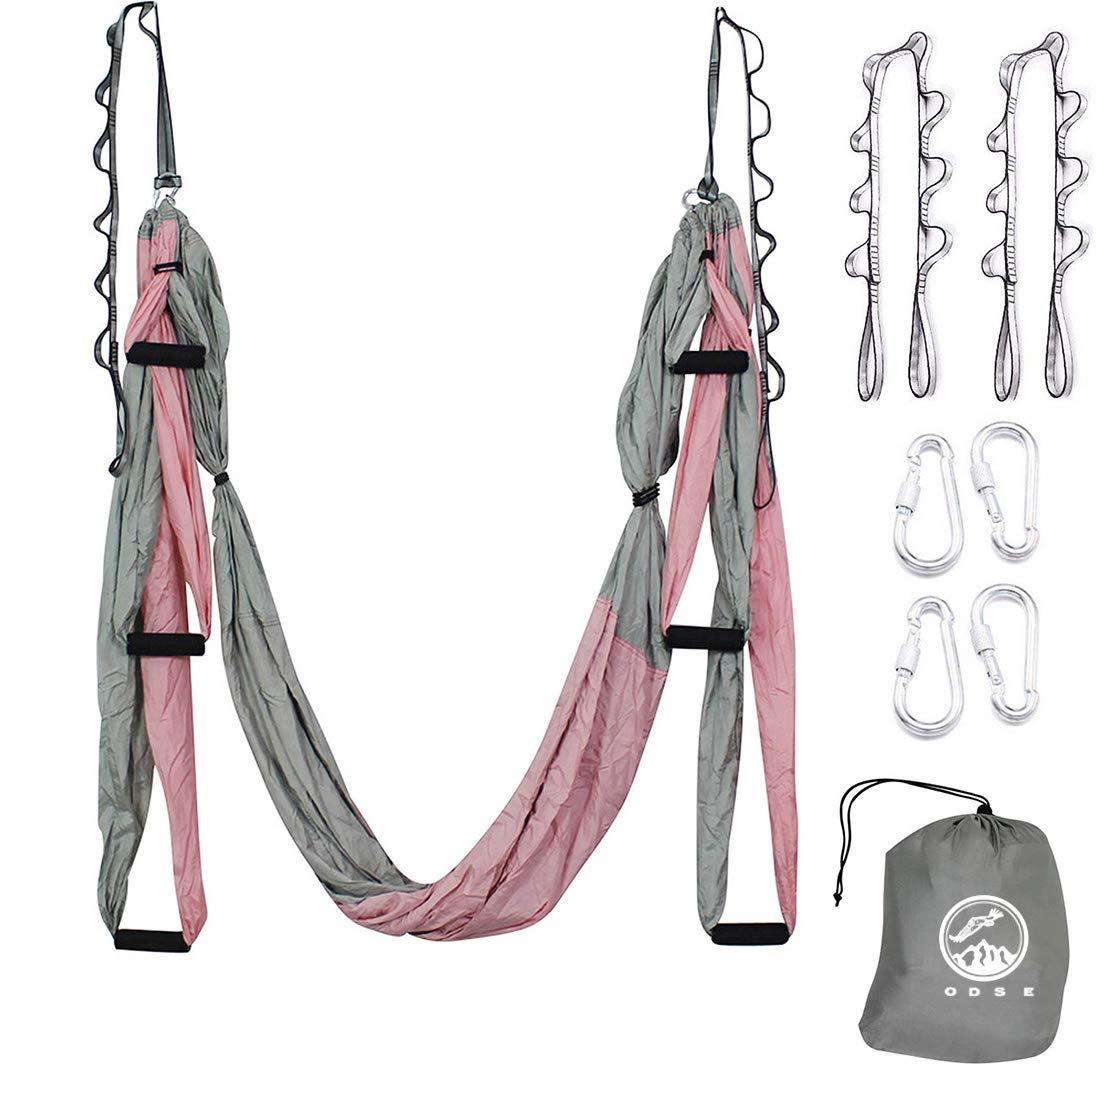 Outdoor Skye Aerial Yoga Swing – Ultra Strong Antigravity Yoga Hammock Sling Inversion Tool for Air Yoga Inversion Exercises – 2 Extensions Straps Included Pink Gray